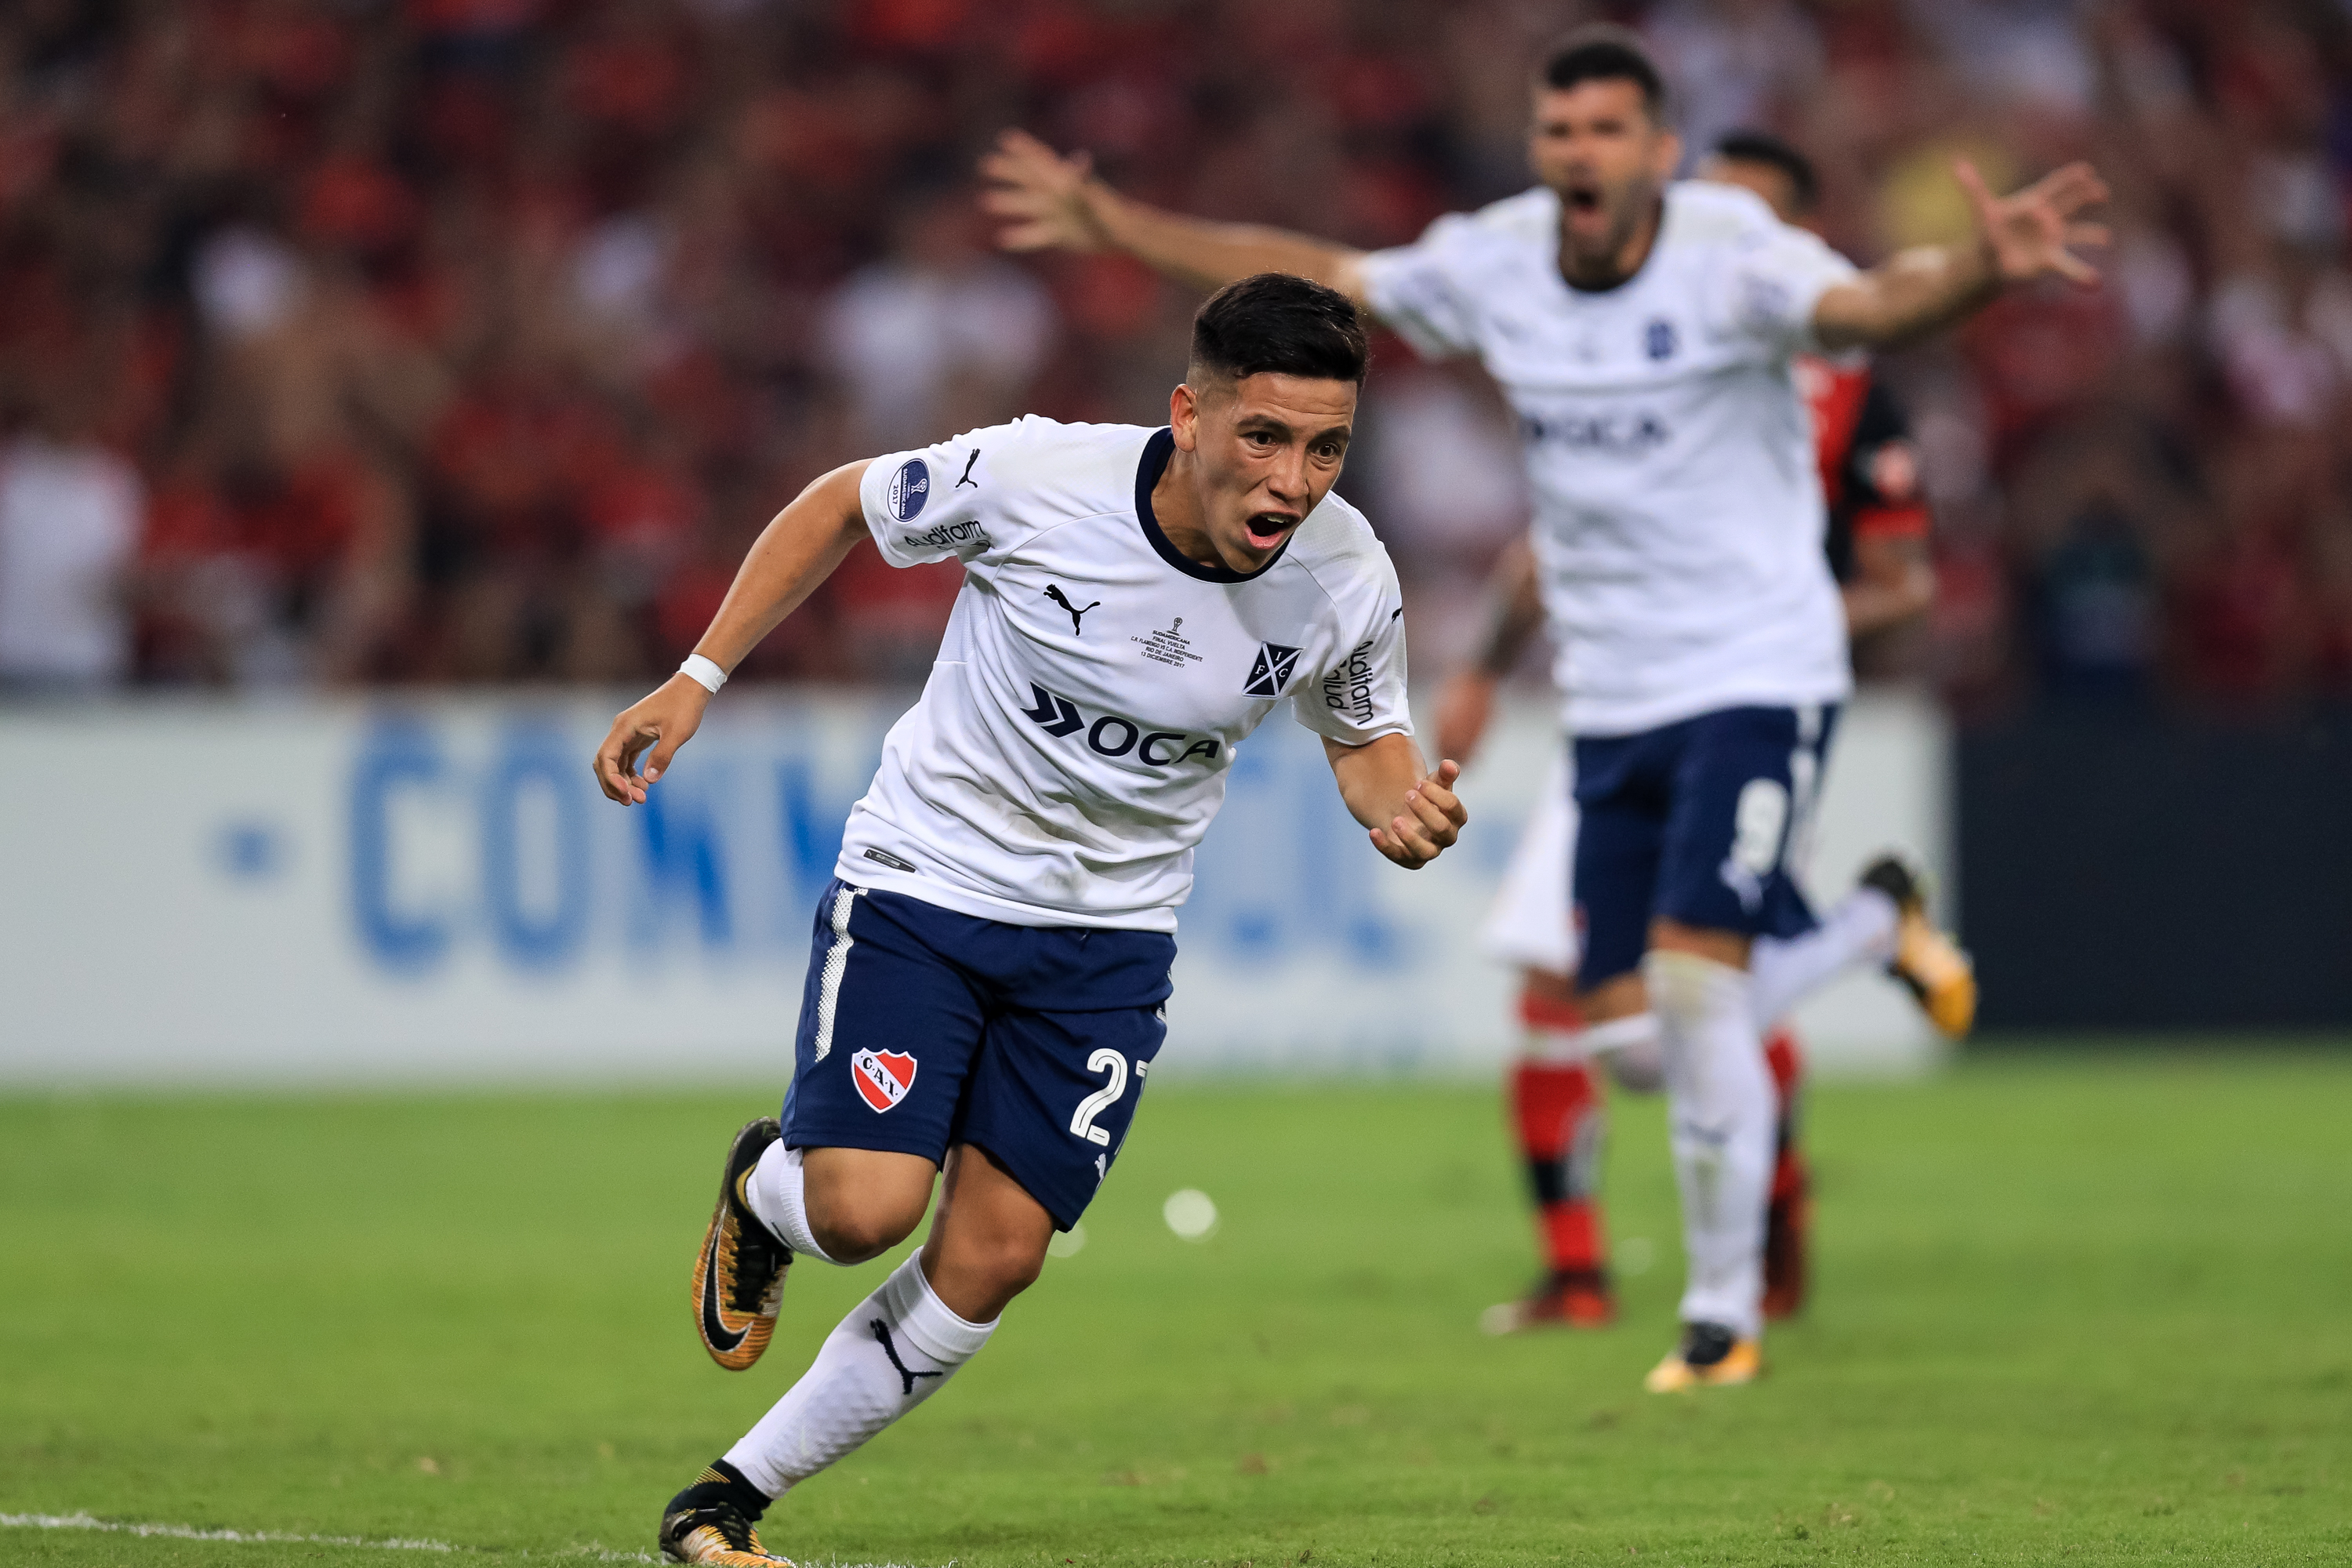 Atlanta United agrees to record transfer for Ezequiel Barco, 18, reports say